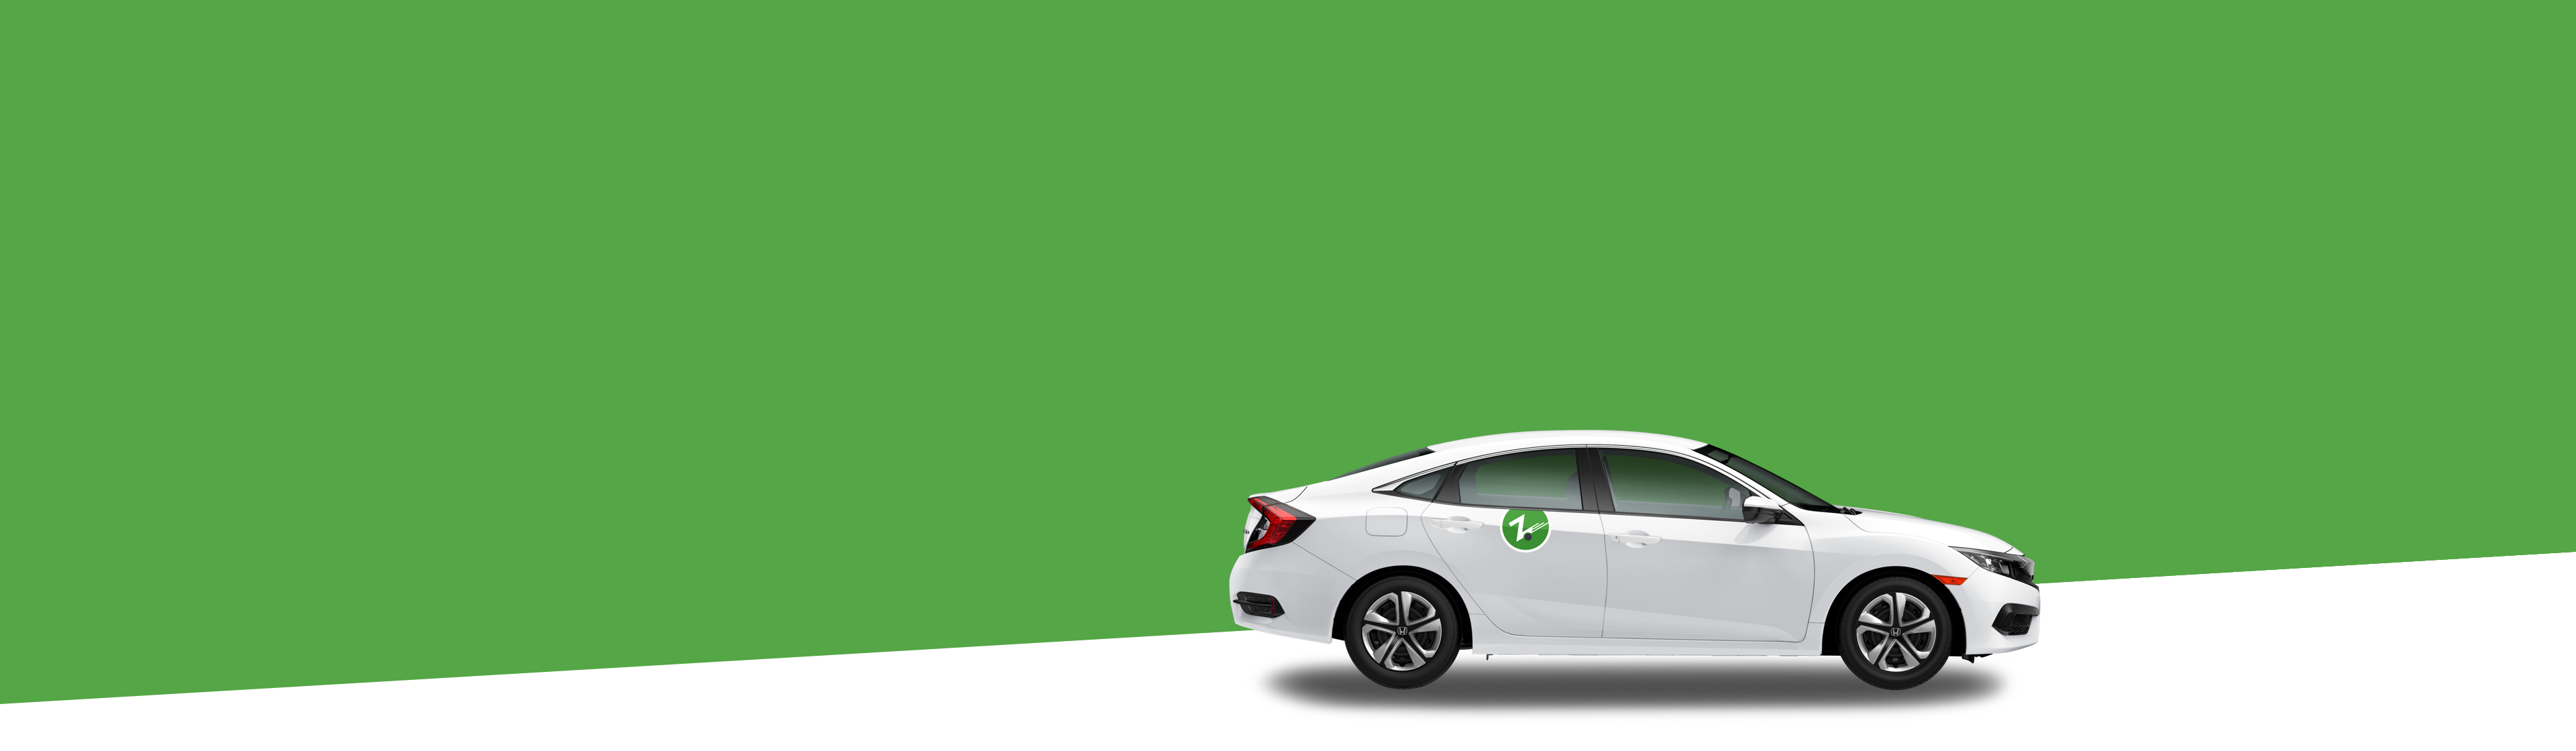 green-background-white-zipcar